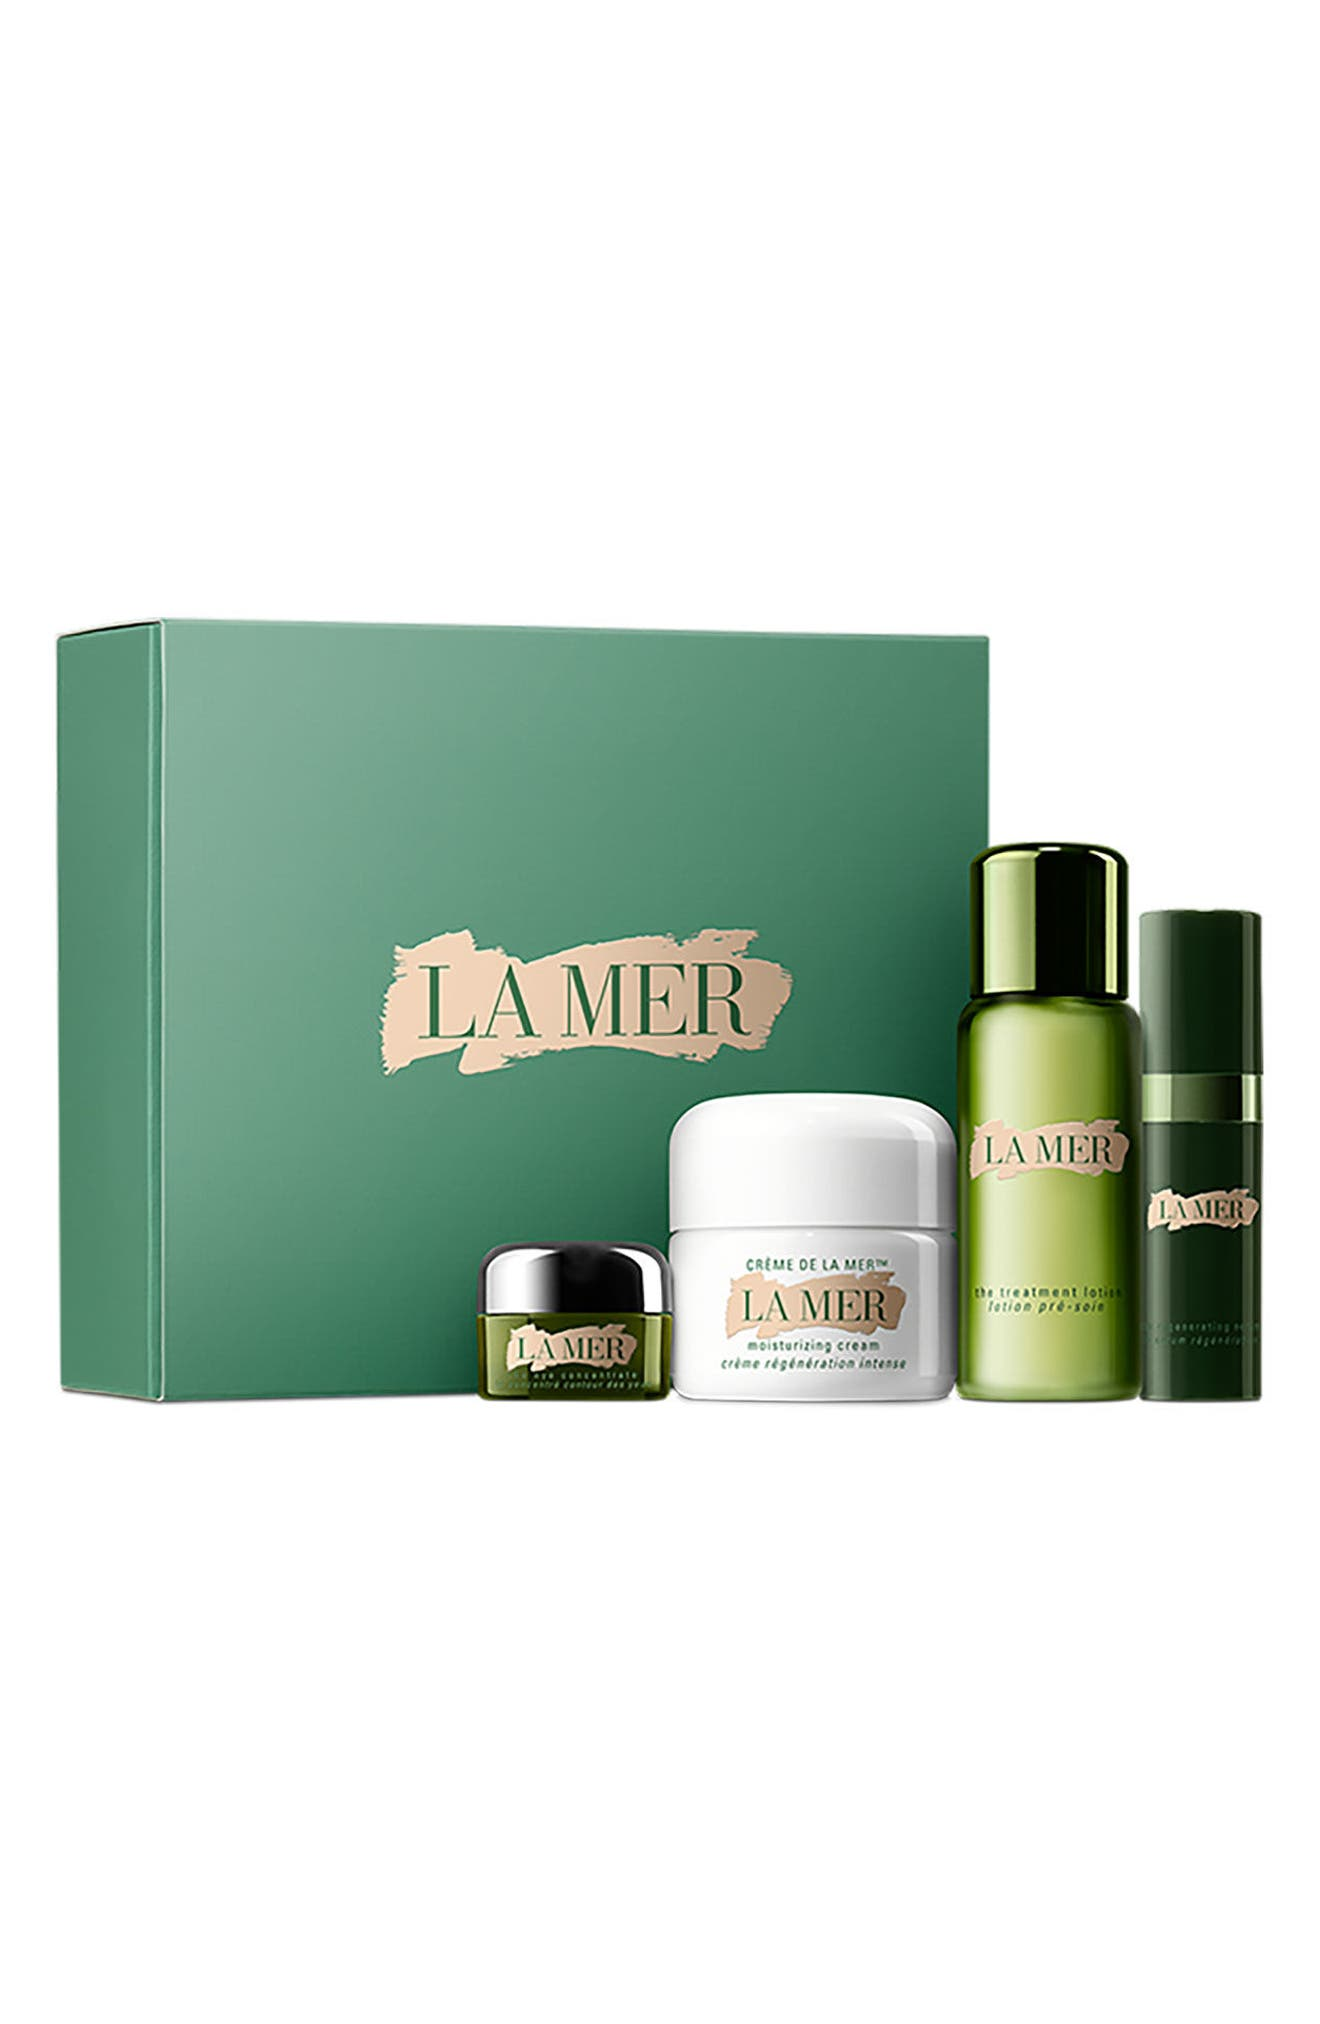 La Mer Introductory Collection (Nordstrom Exclusive) ($208 Value)